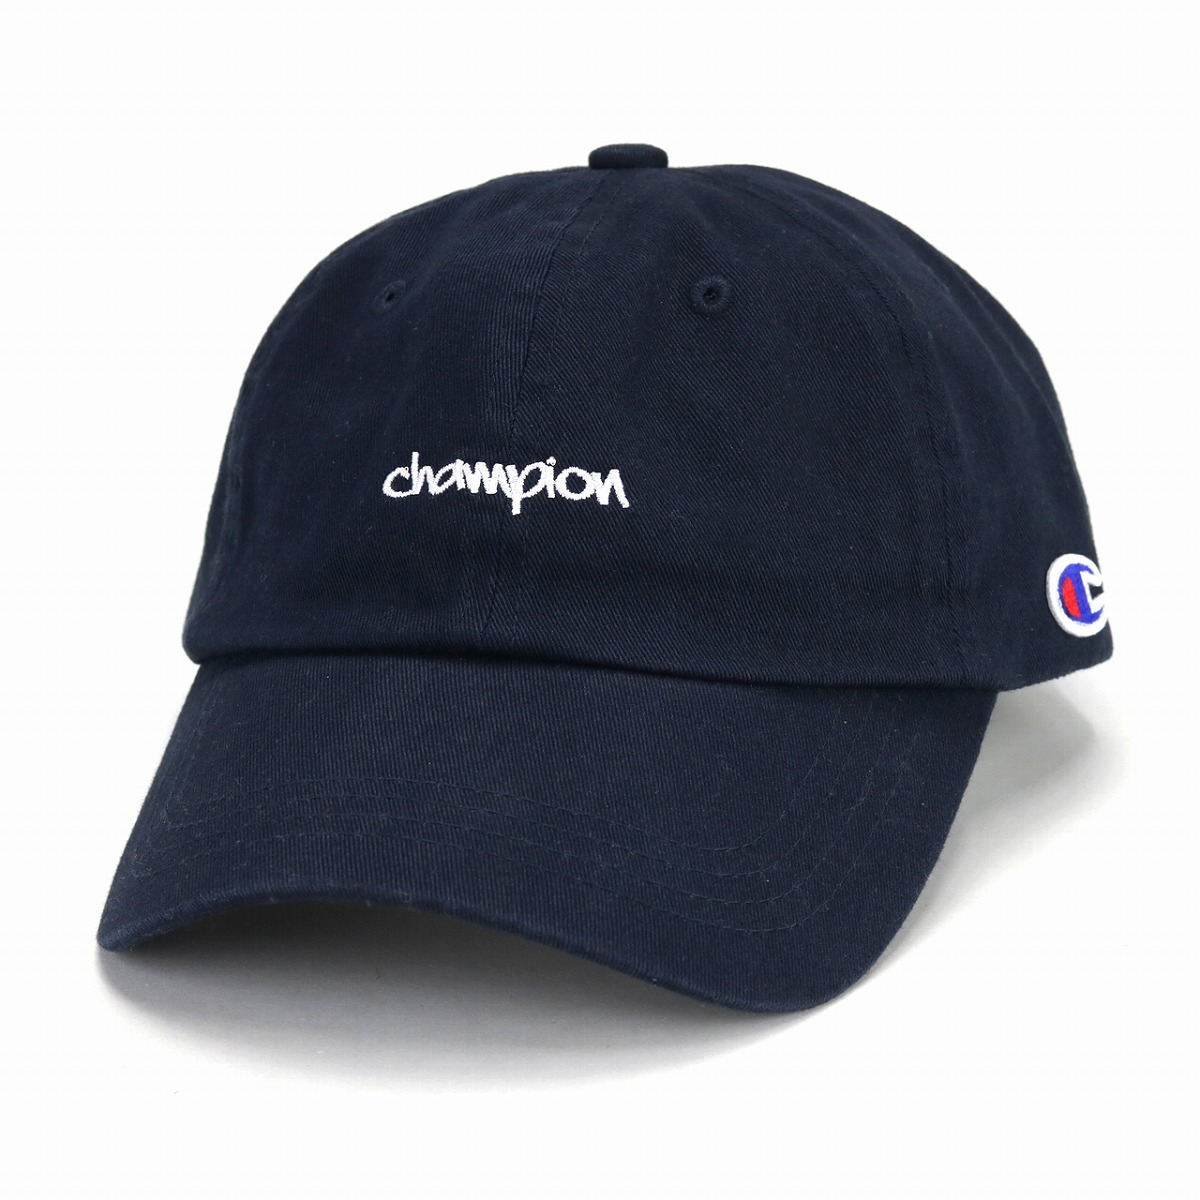 15ef8efef56 Champion hat cap men champion logo cap Lady s cotton oar season mini-logo baseball  cap sports brand popularity cap adjustable size   dark blue navy ...